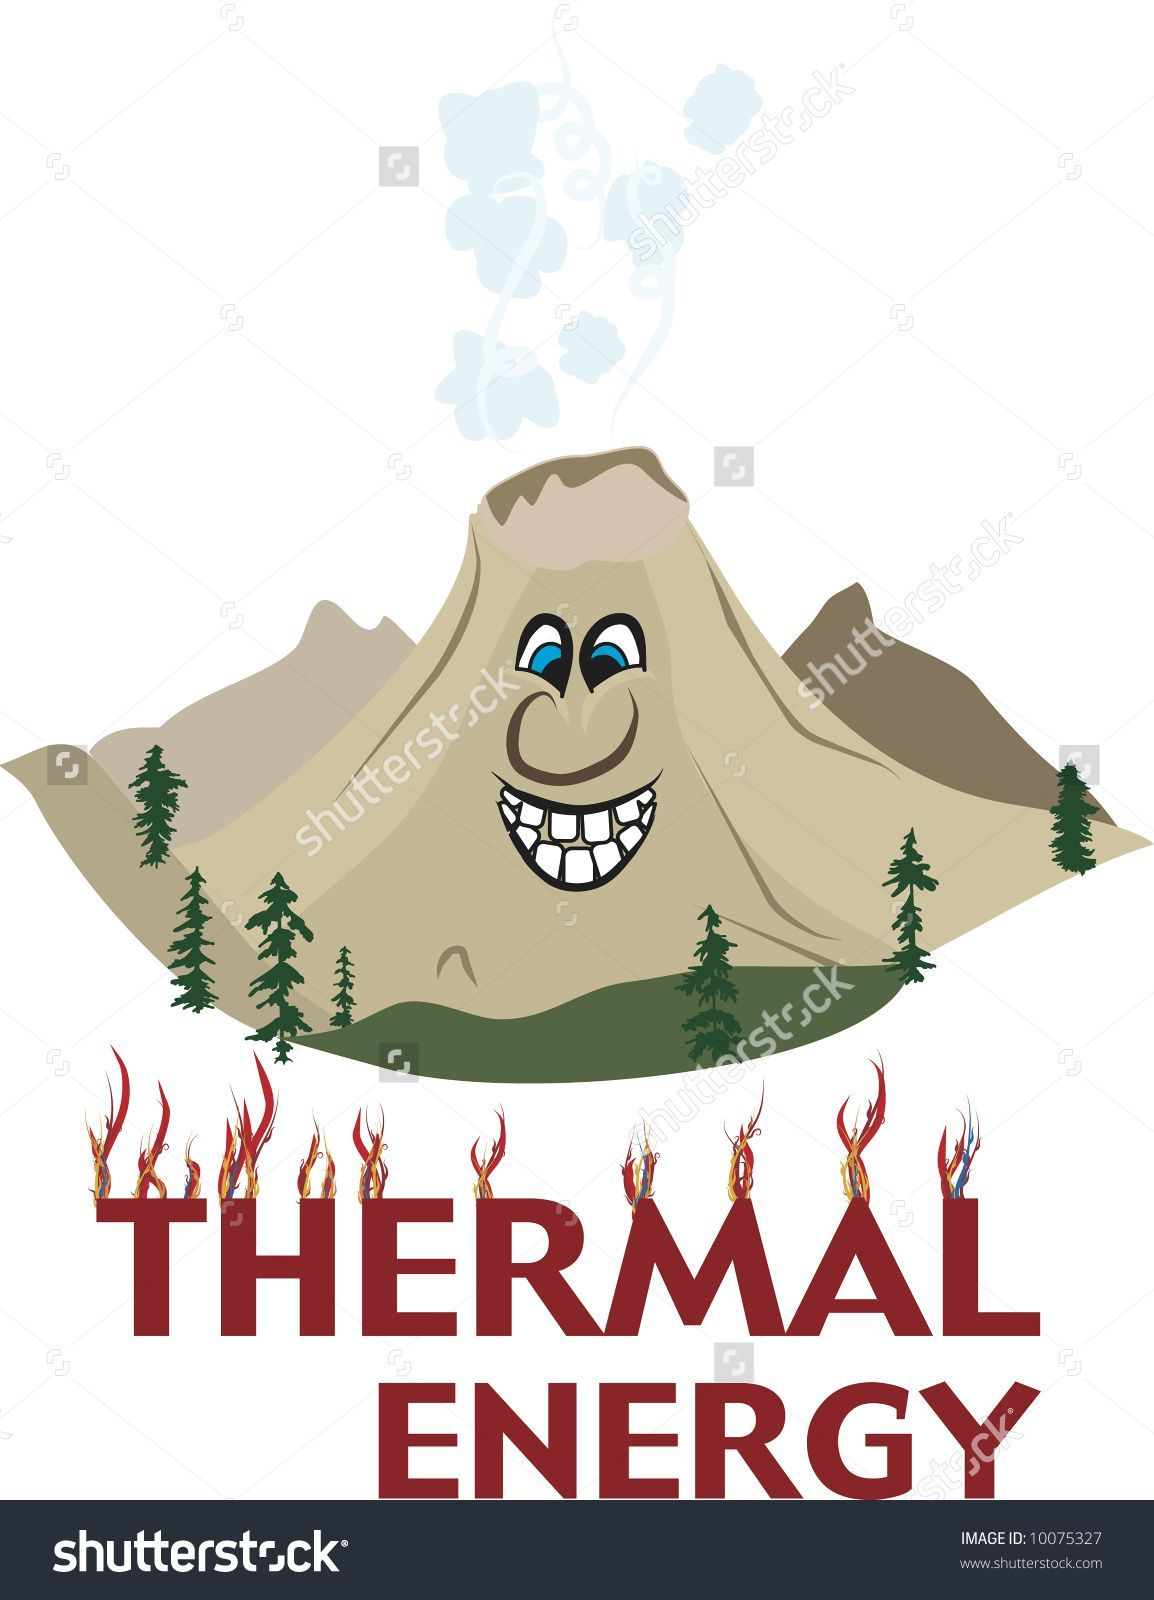 Thermal energy clipart 6 » Clipart Portal.